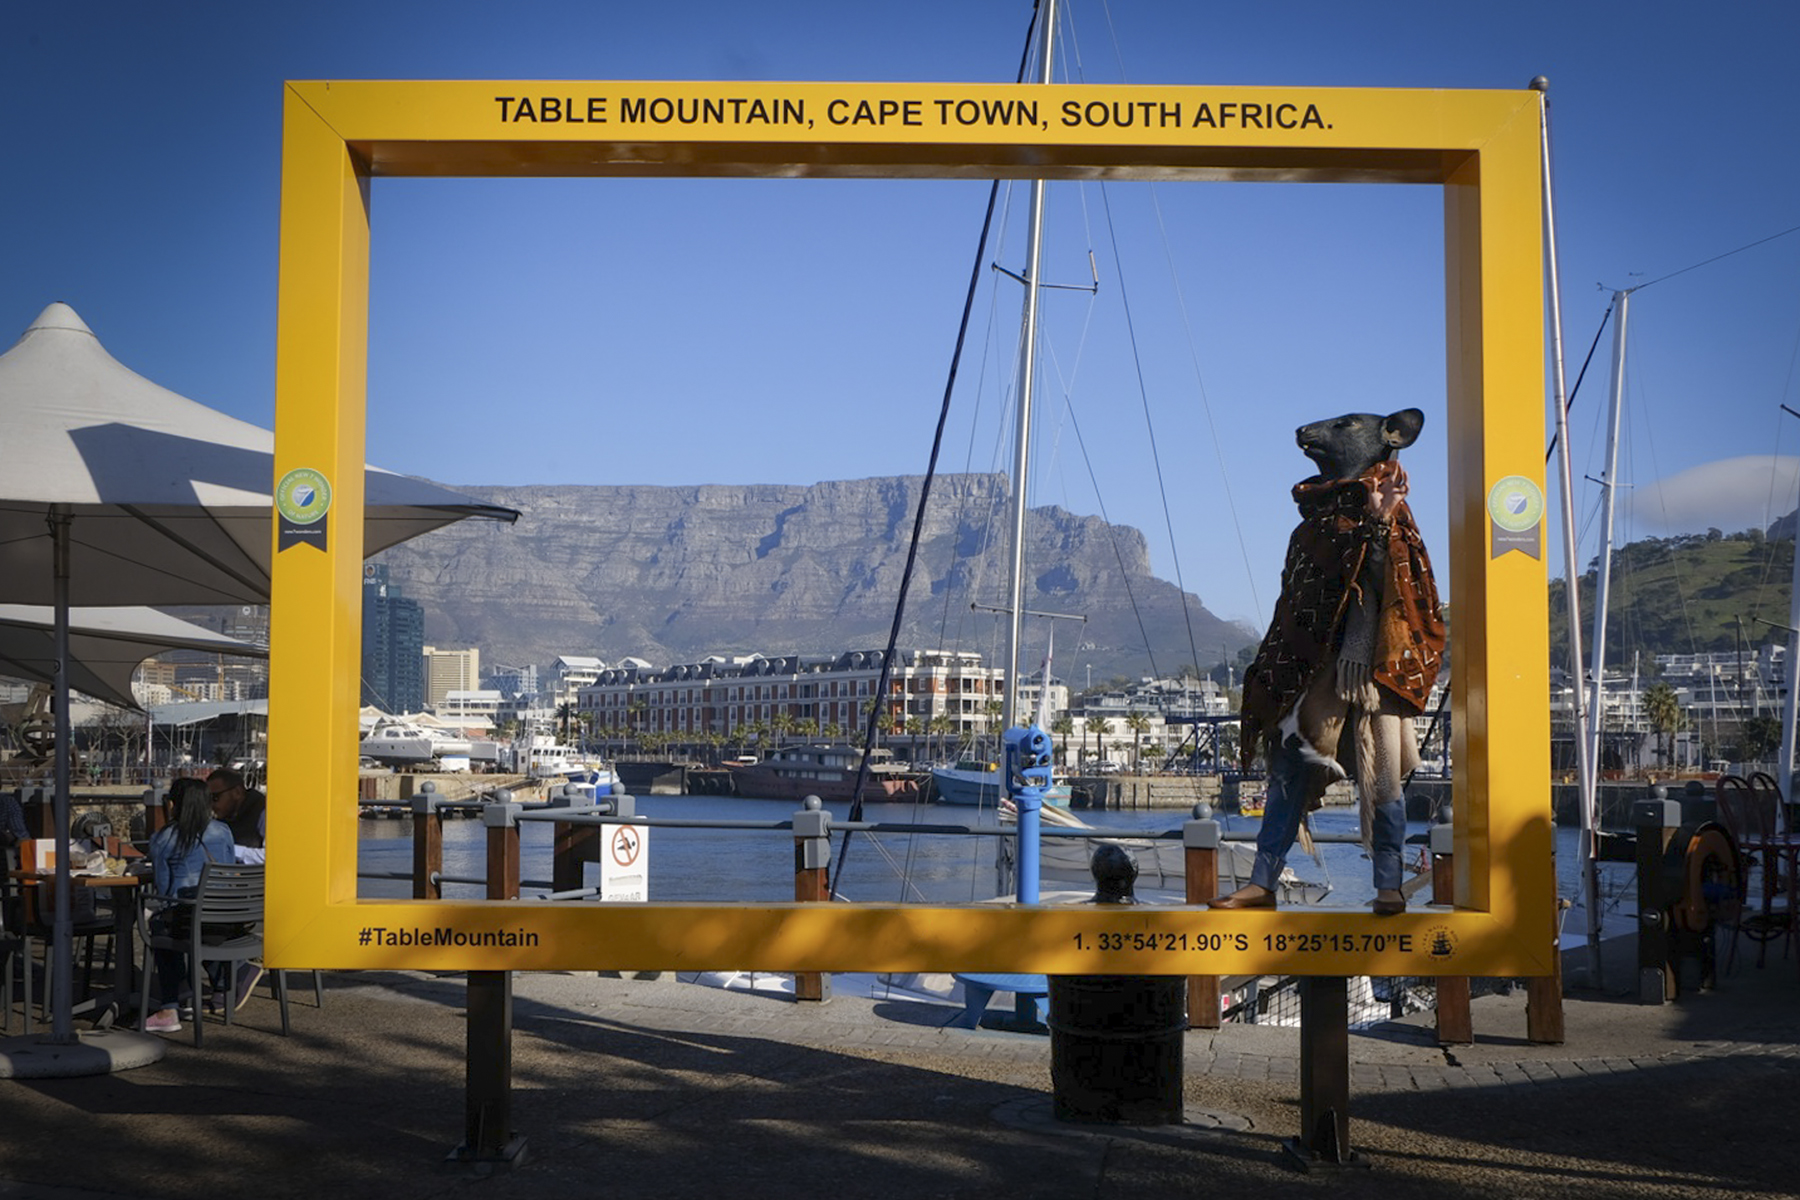 thetravellingmouse_southafrica_capetown2016-07-15no11.32.28.jpg